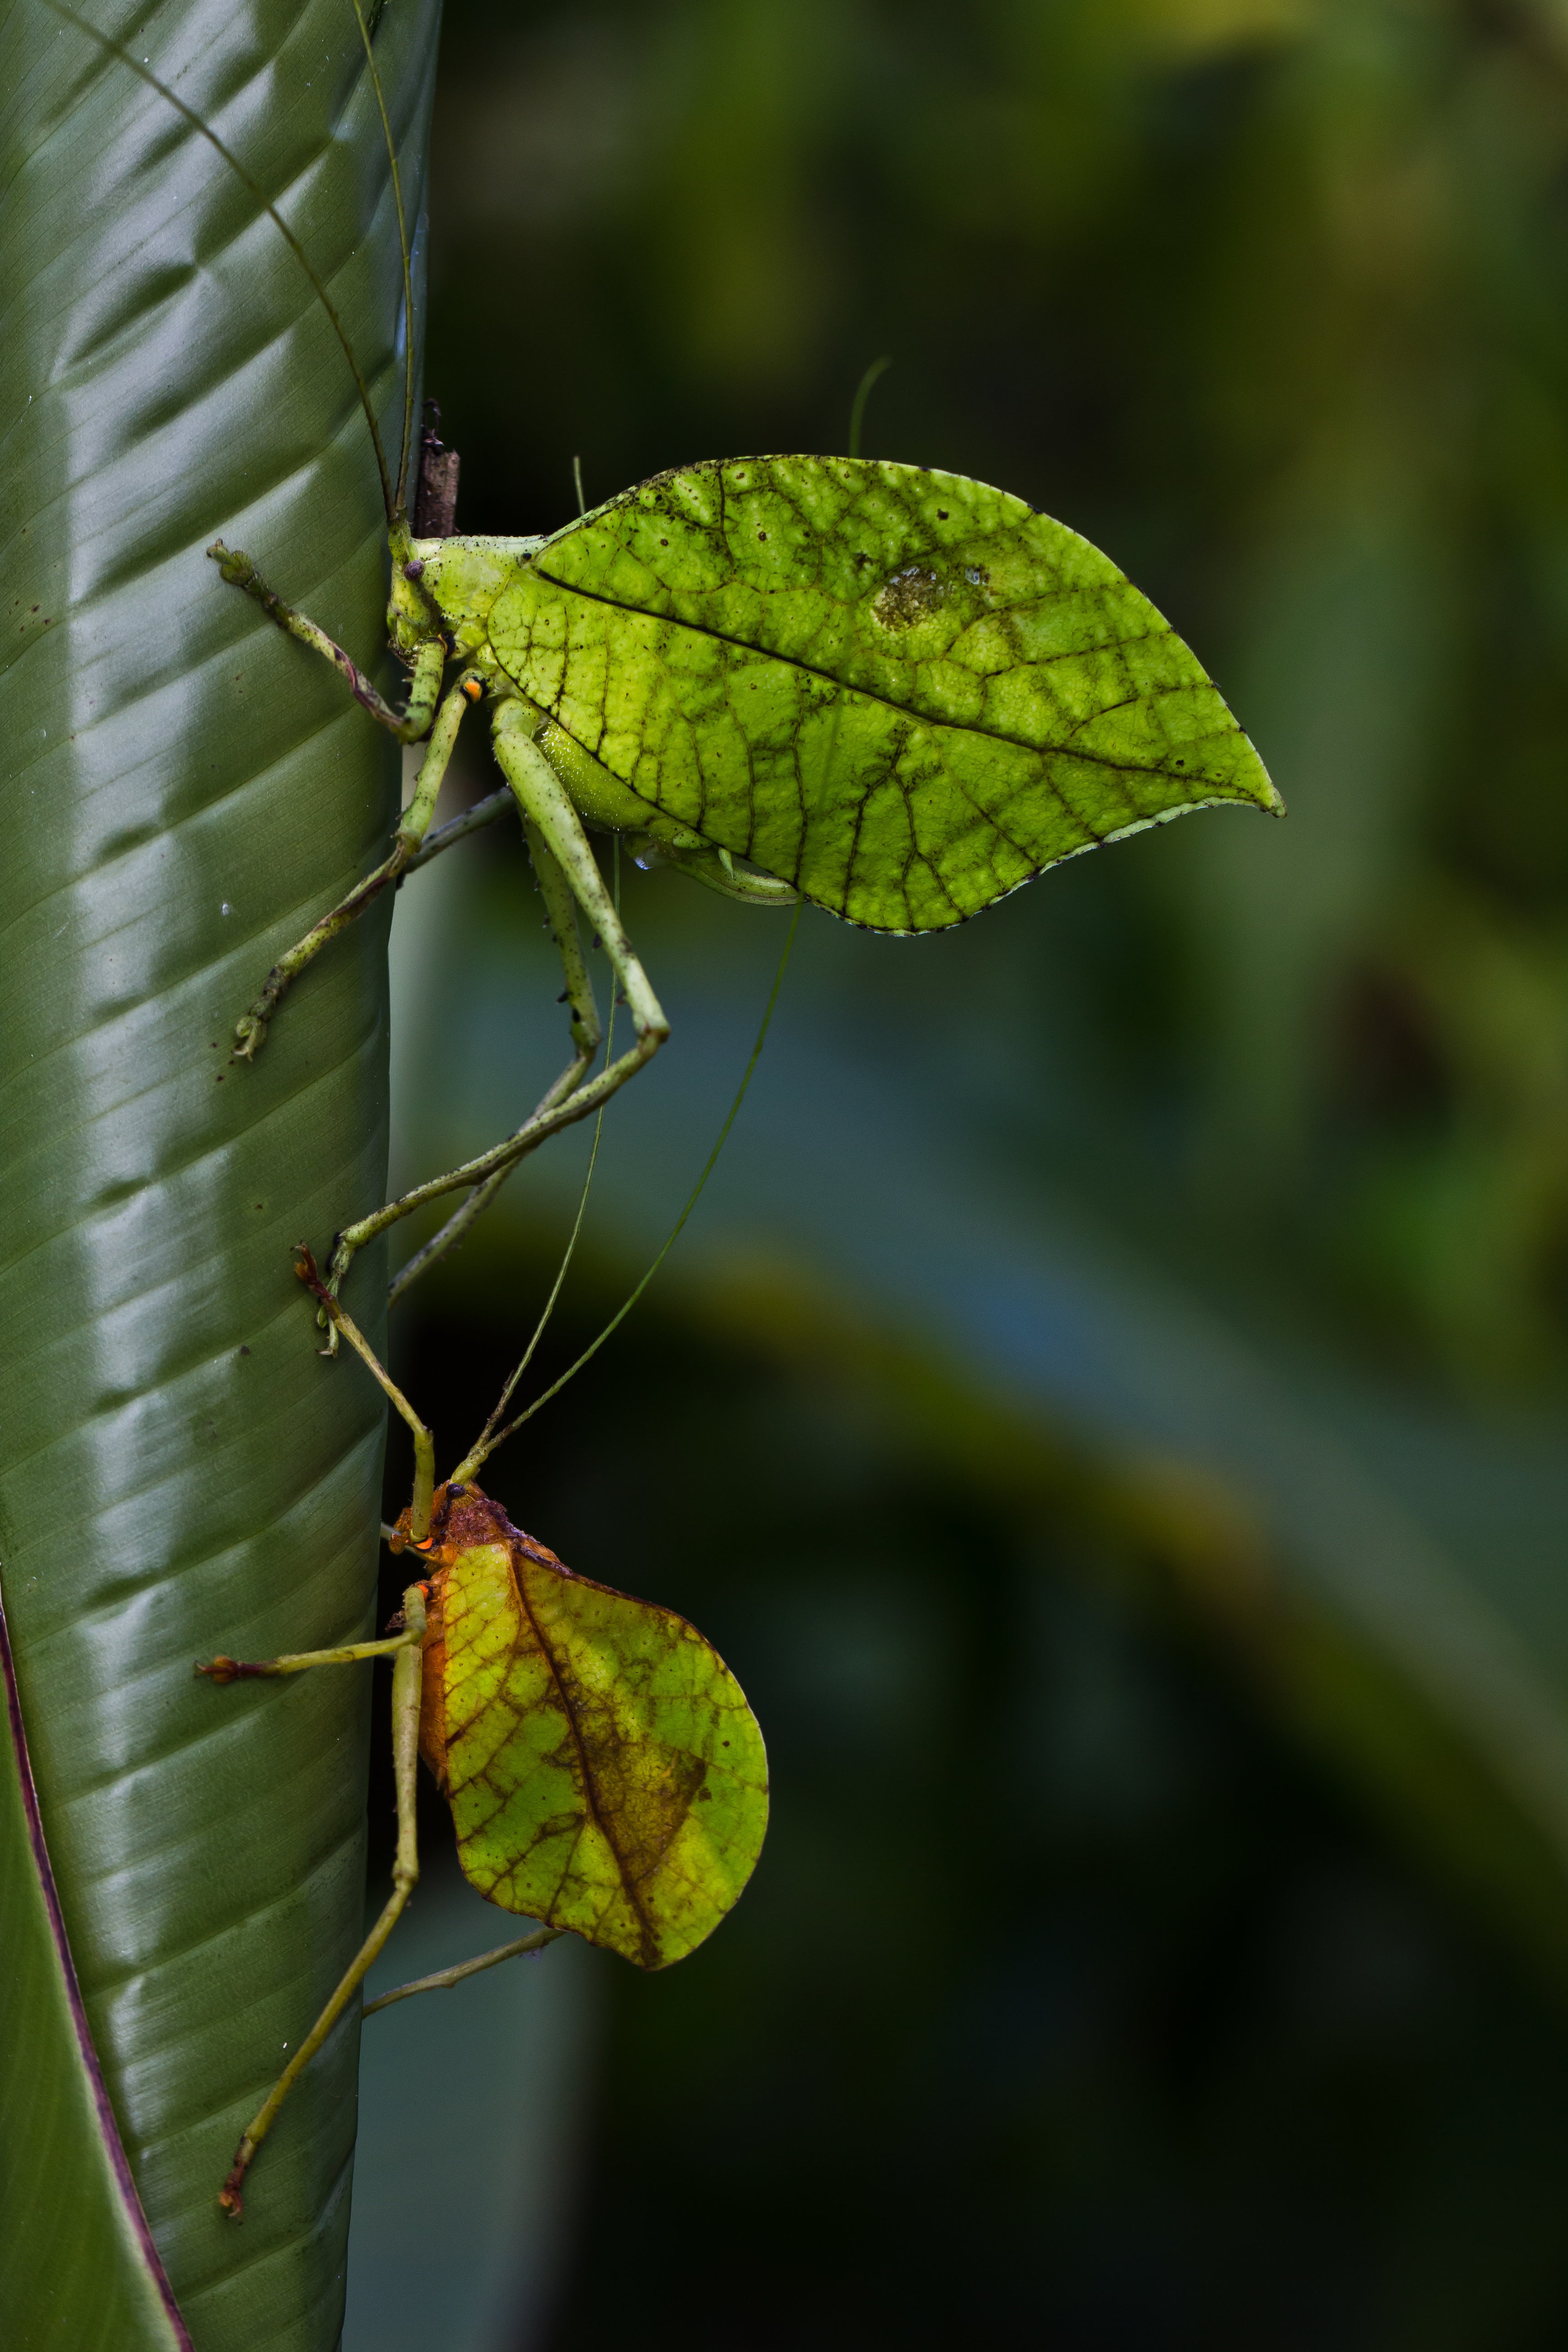 New Insect Species Mimics Dead Leaves For Camouflage